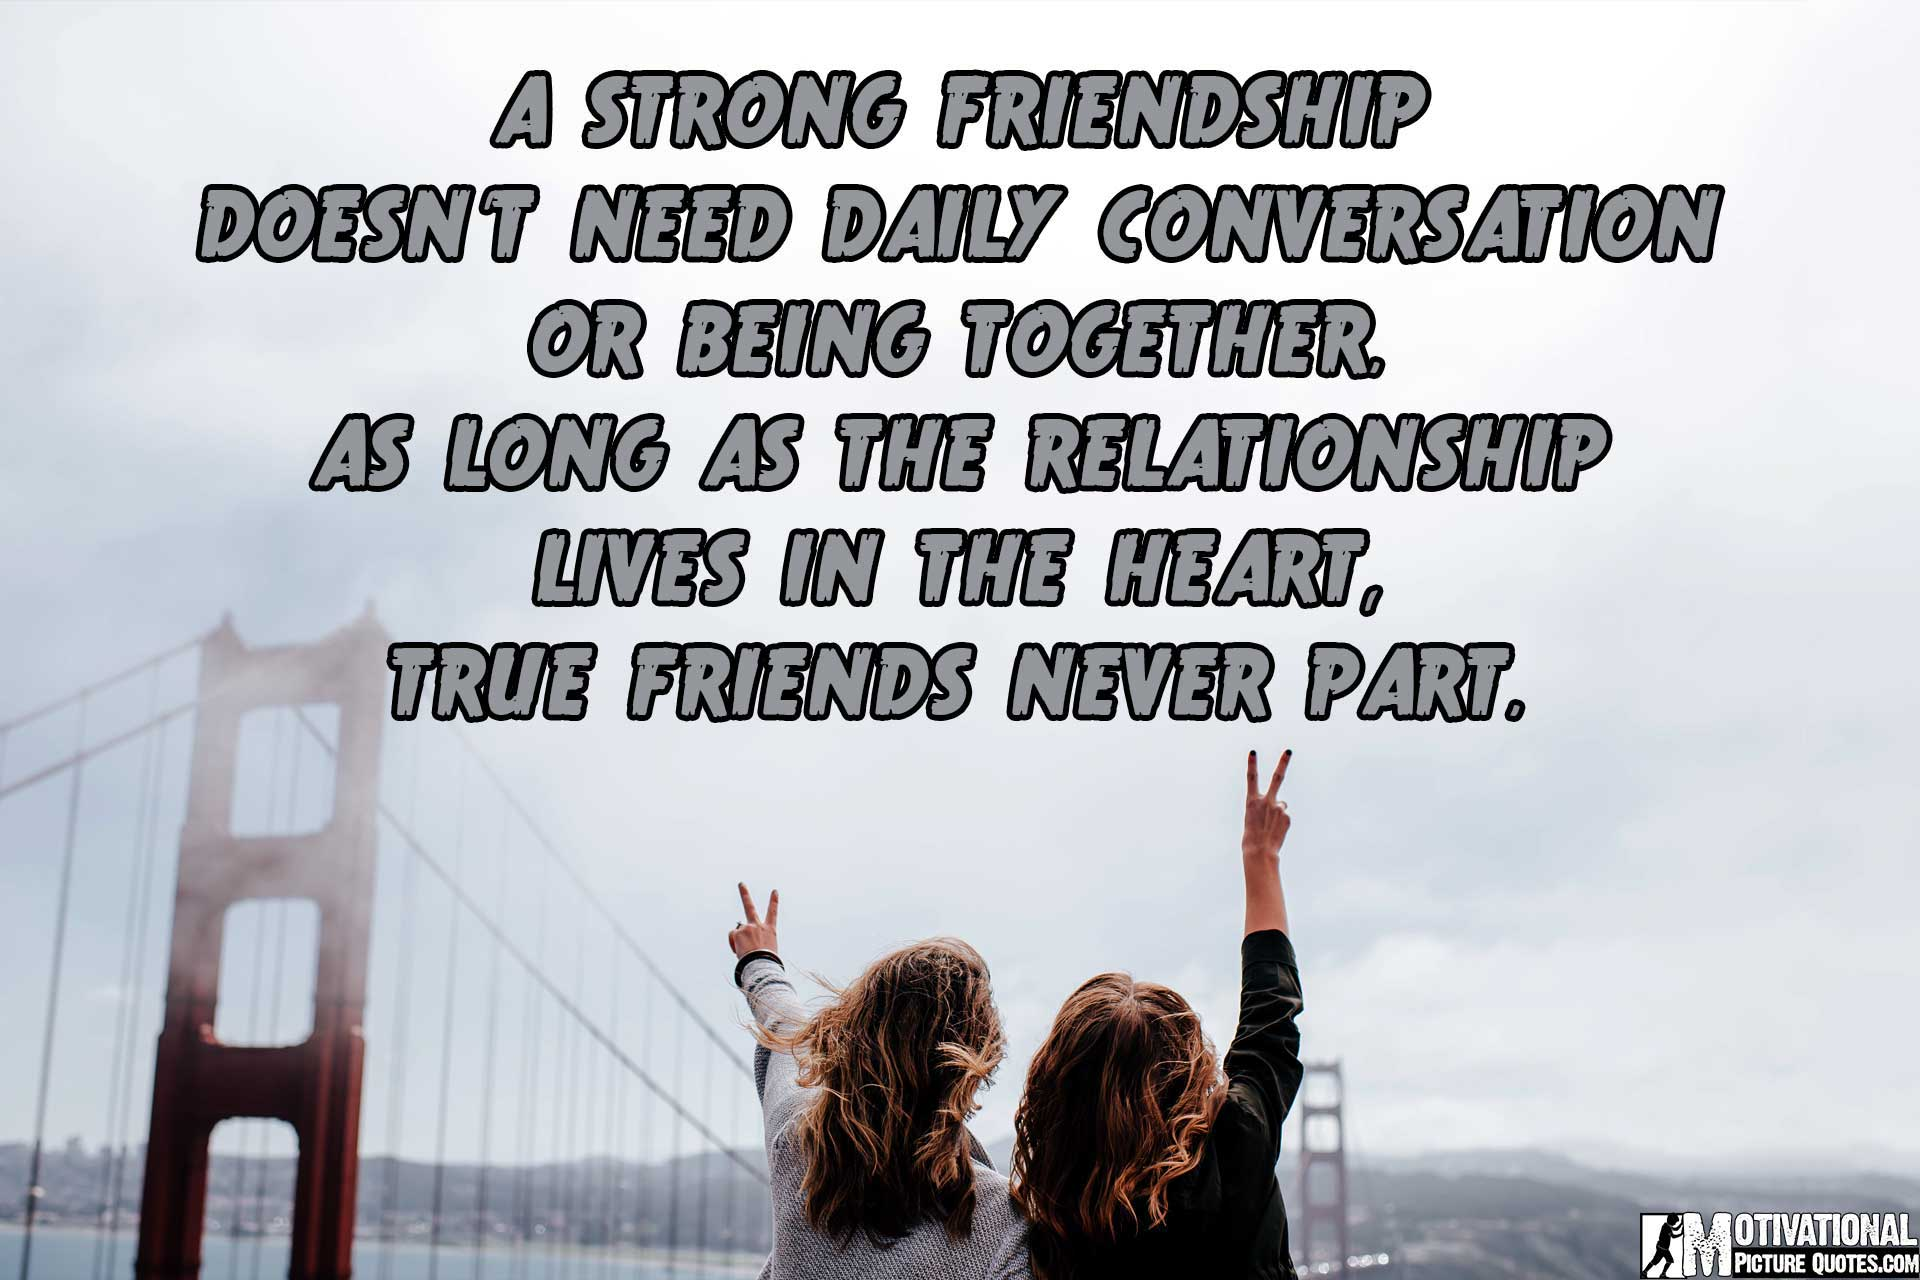 Image of: Stars True Friendship Quotes Images Insbright 25 Inspirational Friendship Quotes Images Free Download